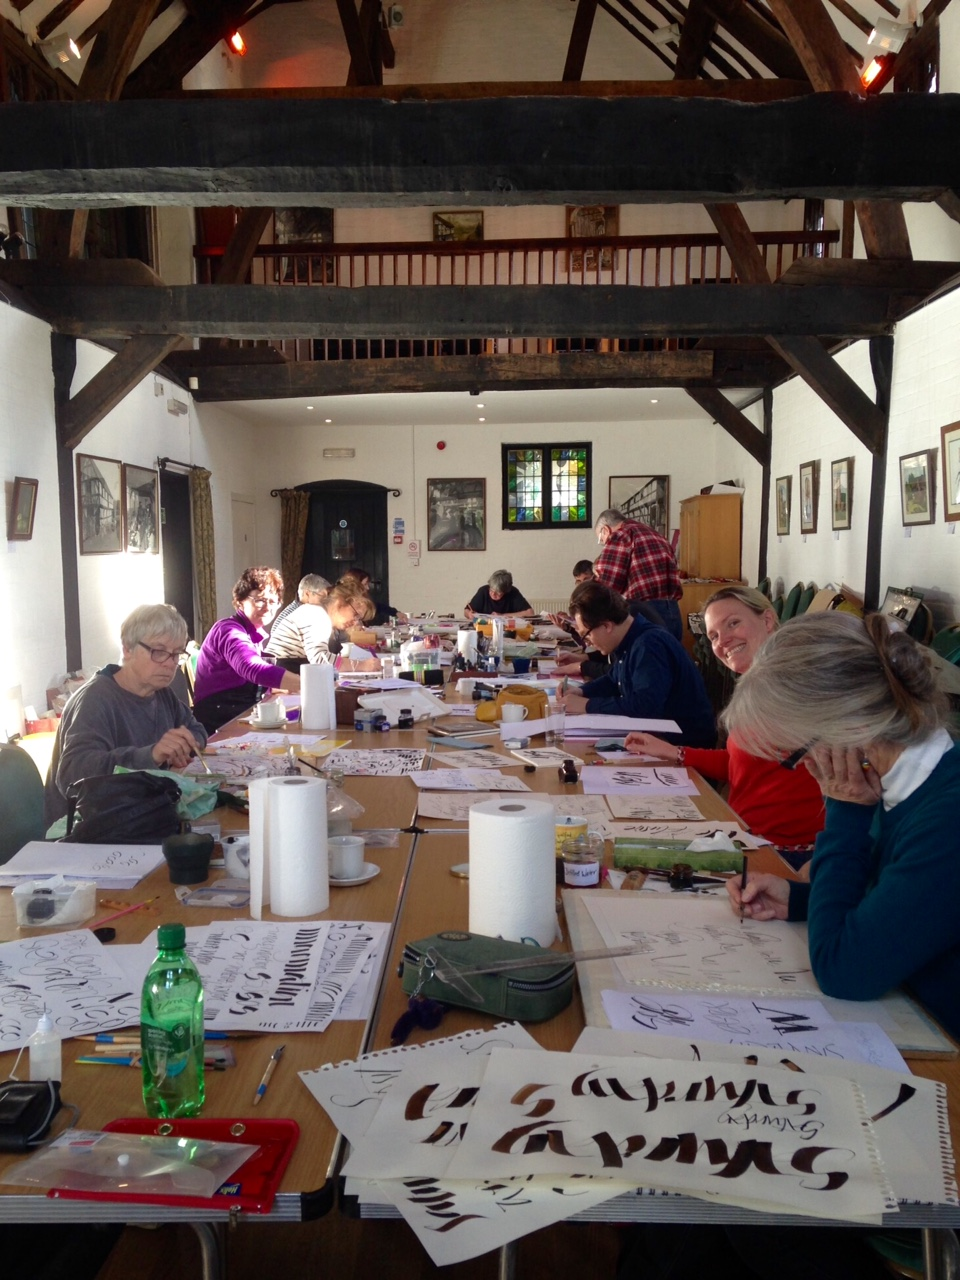 Calligraphers at work learning ruling pen